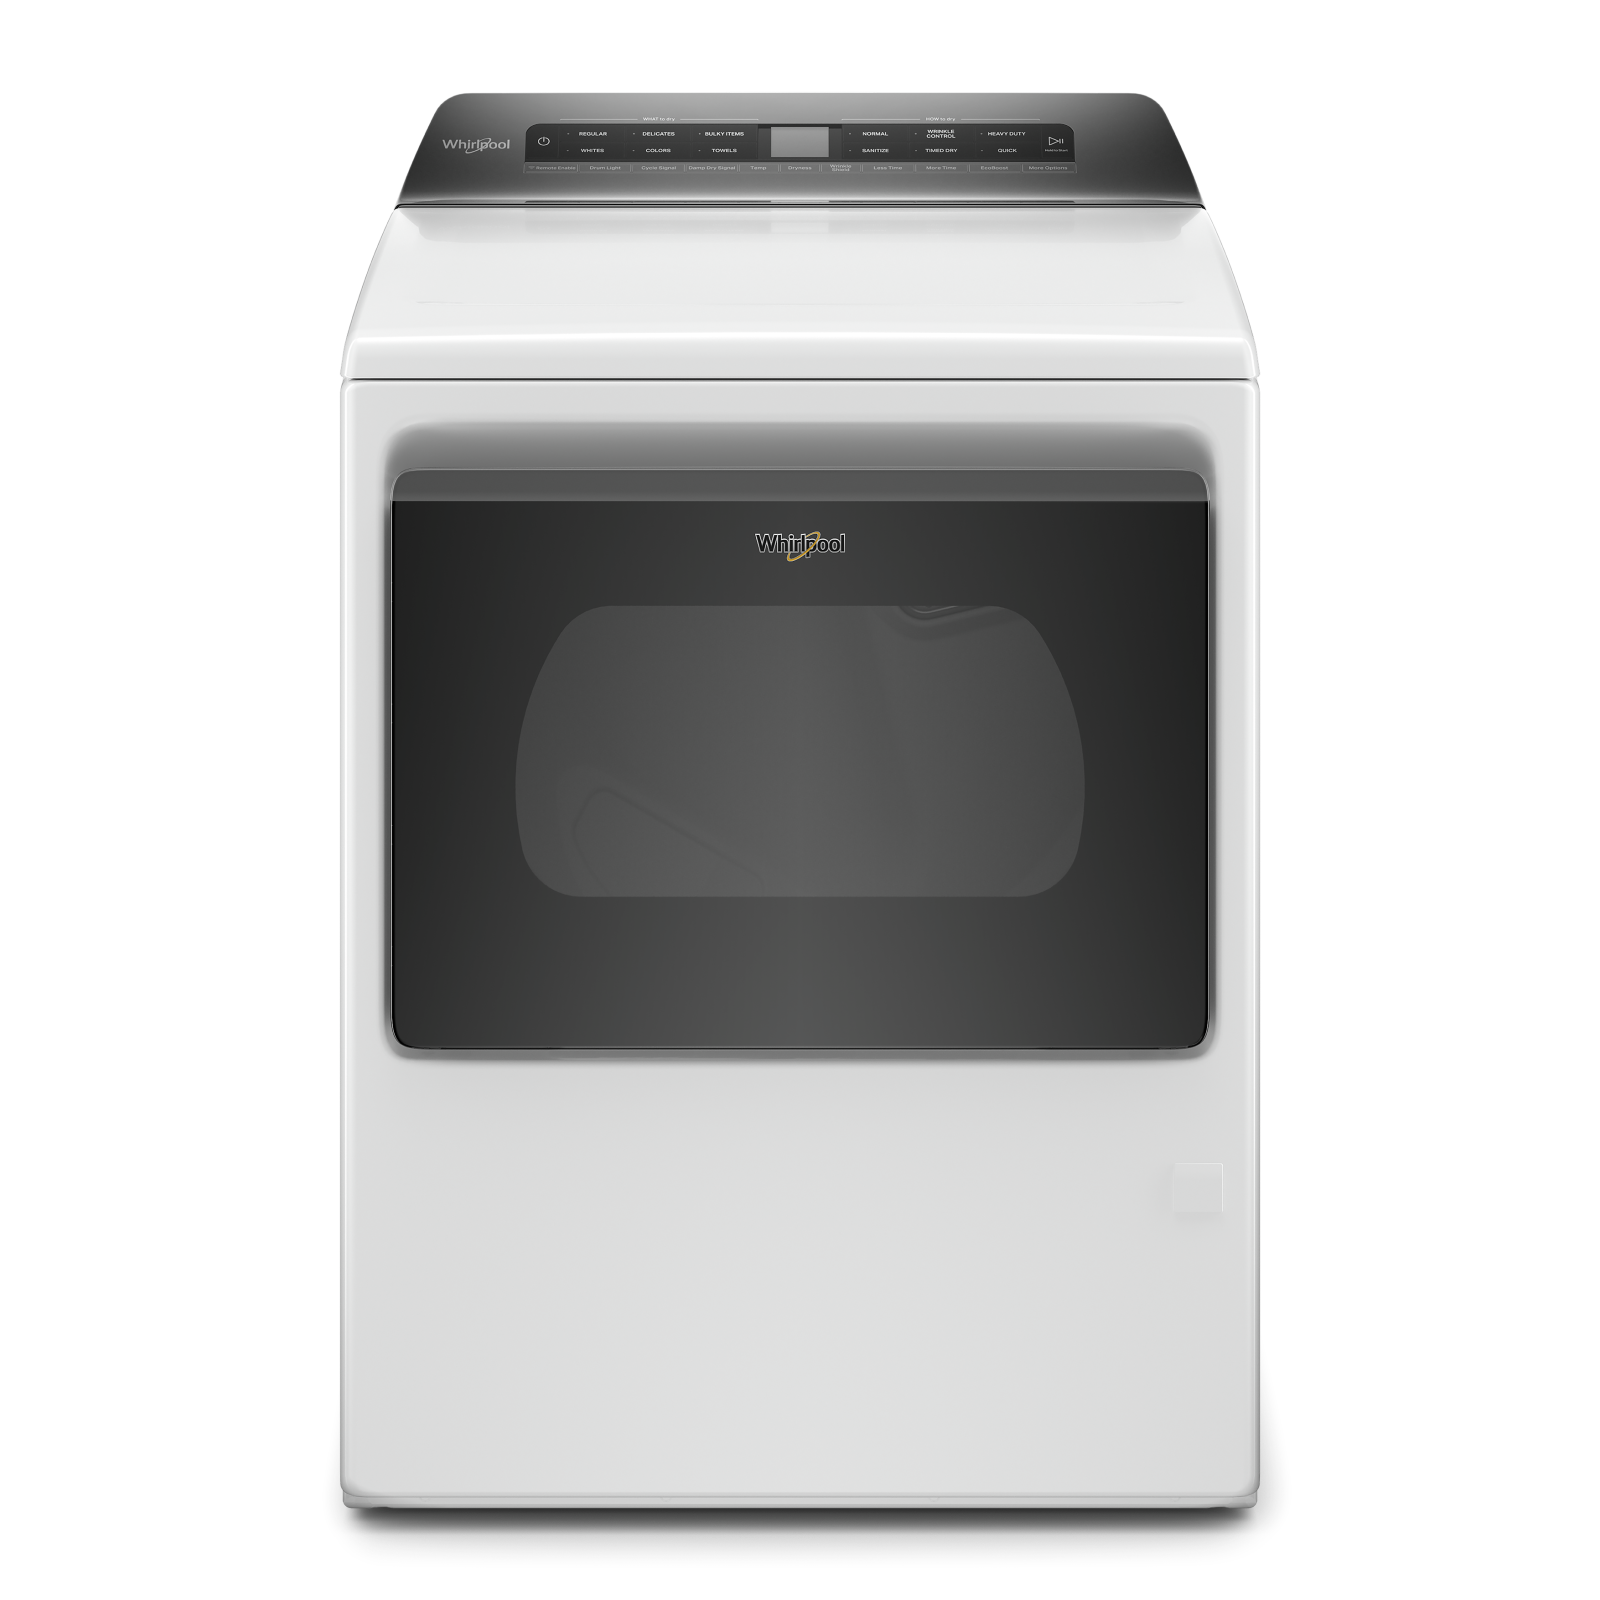 Whirlpool Dryer WGD6120HW in White color showcased by Corbeil Electro Store